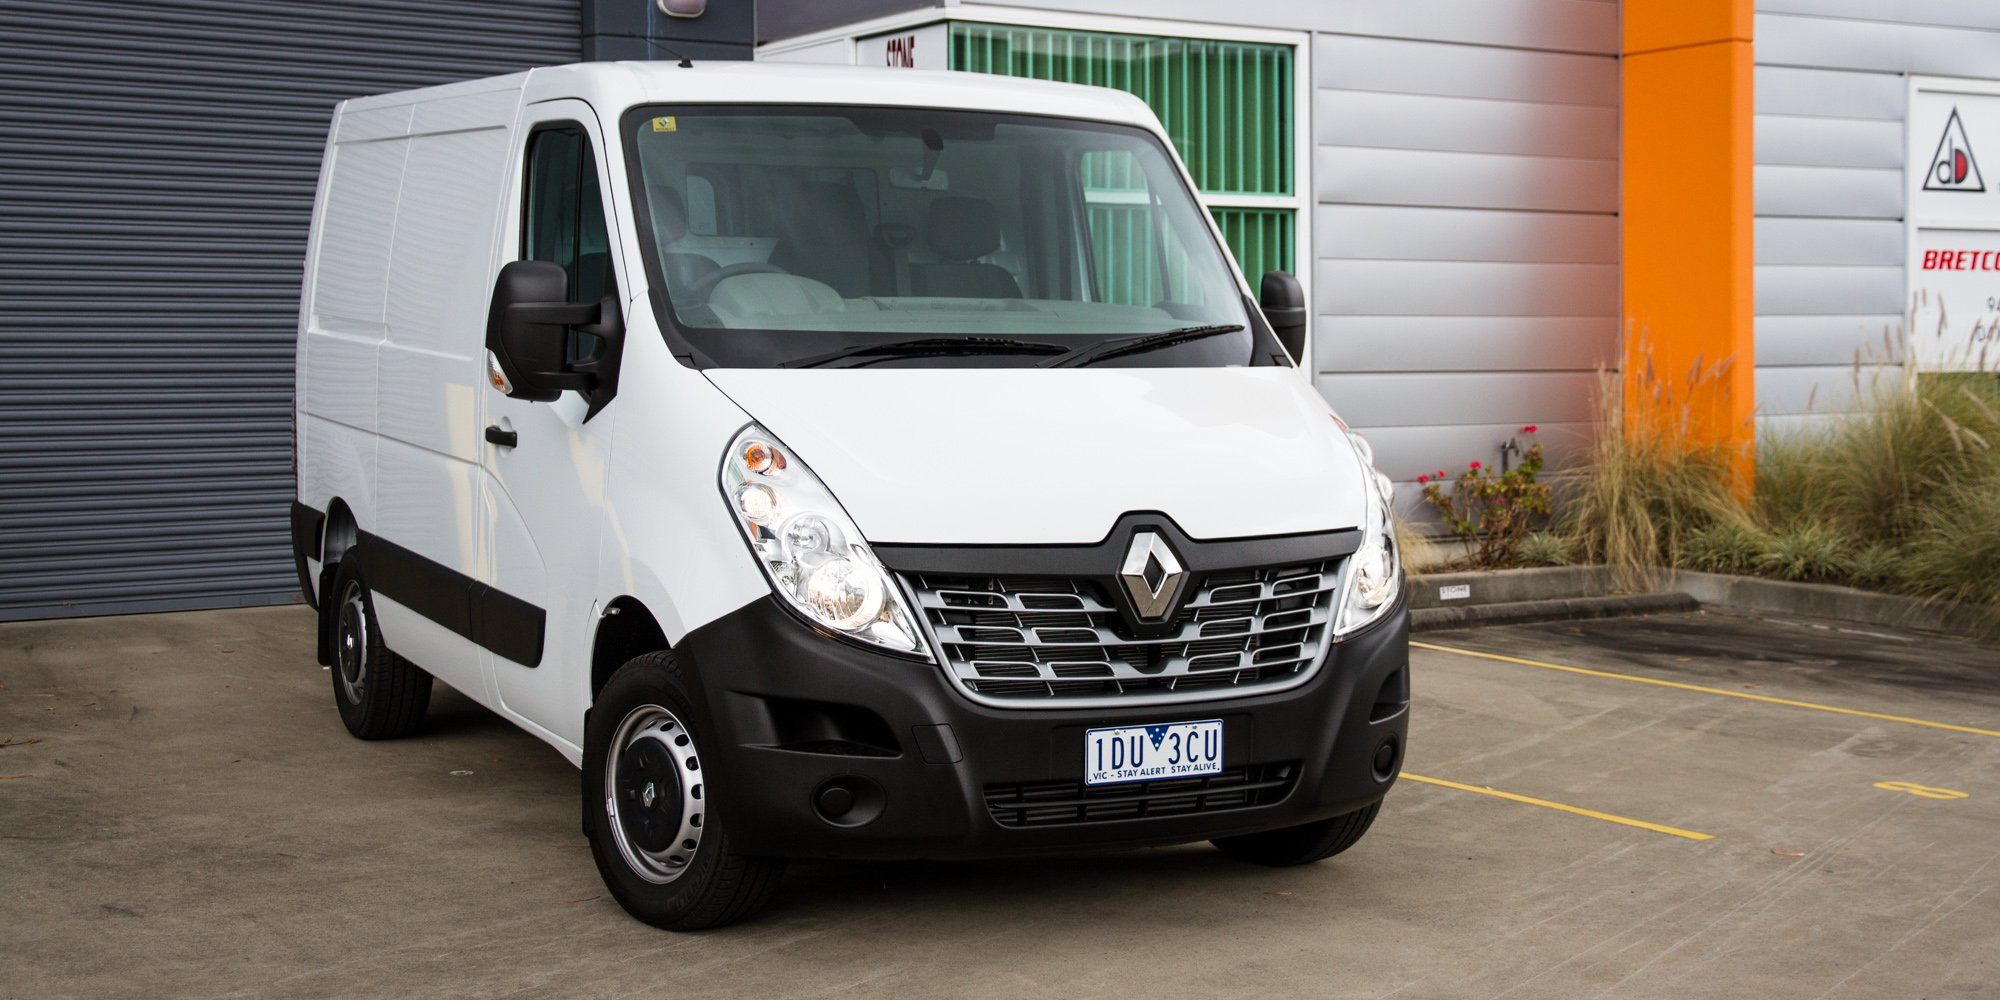 2015 renault master l1h1 review caradvice. Black Bedroom Furniture Sets. Home Design Ideas